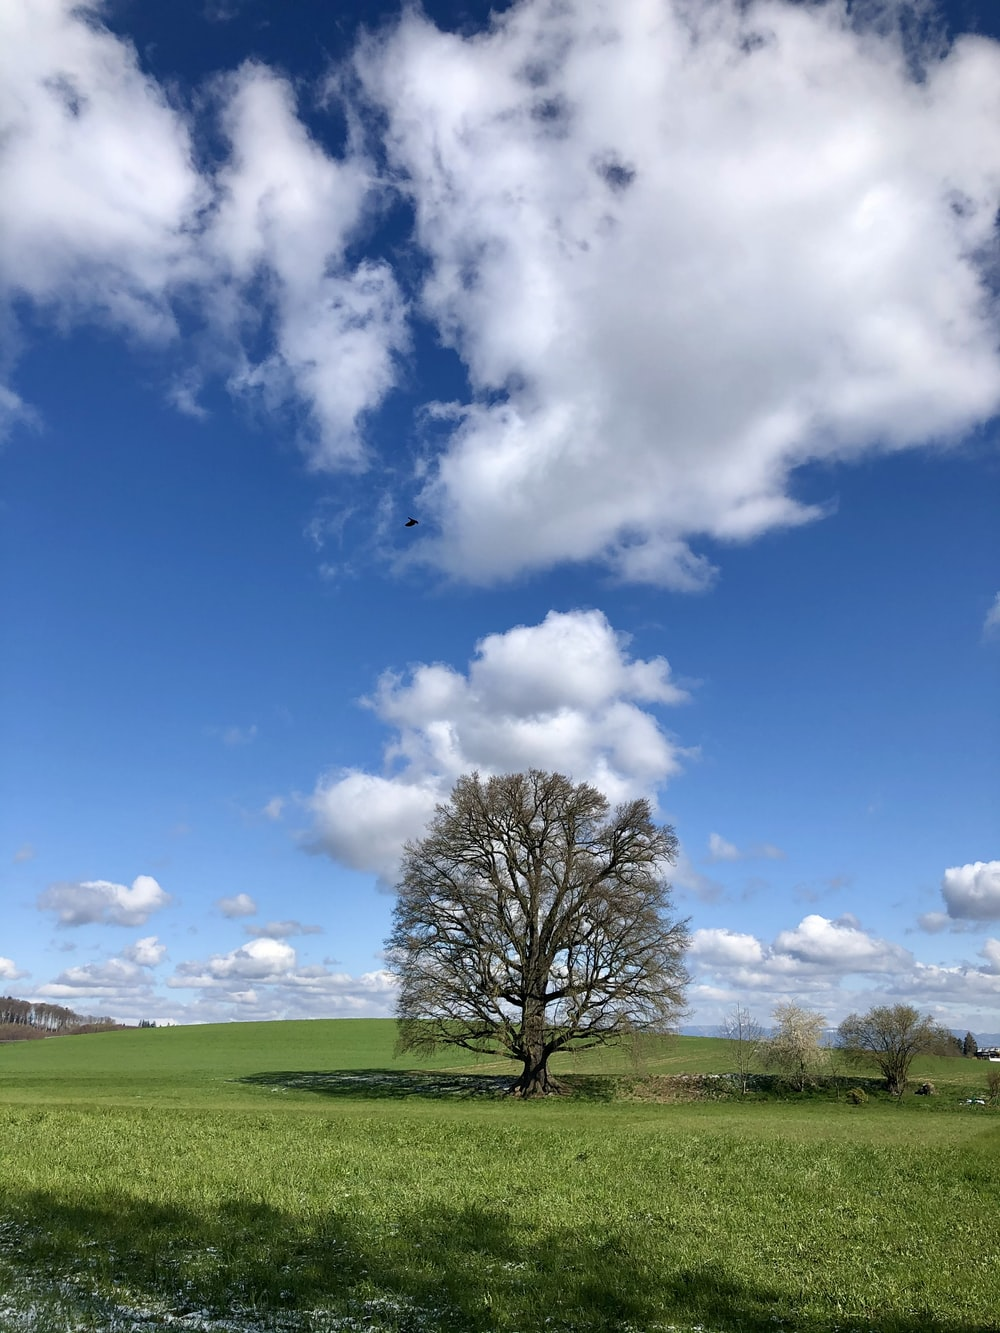 leafless tree on green grass field under blue and white cloudy sky during daytime